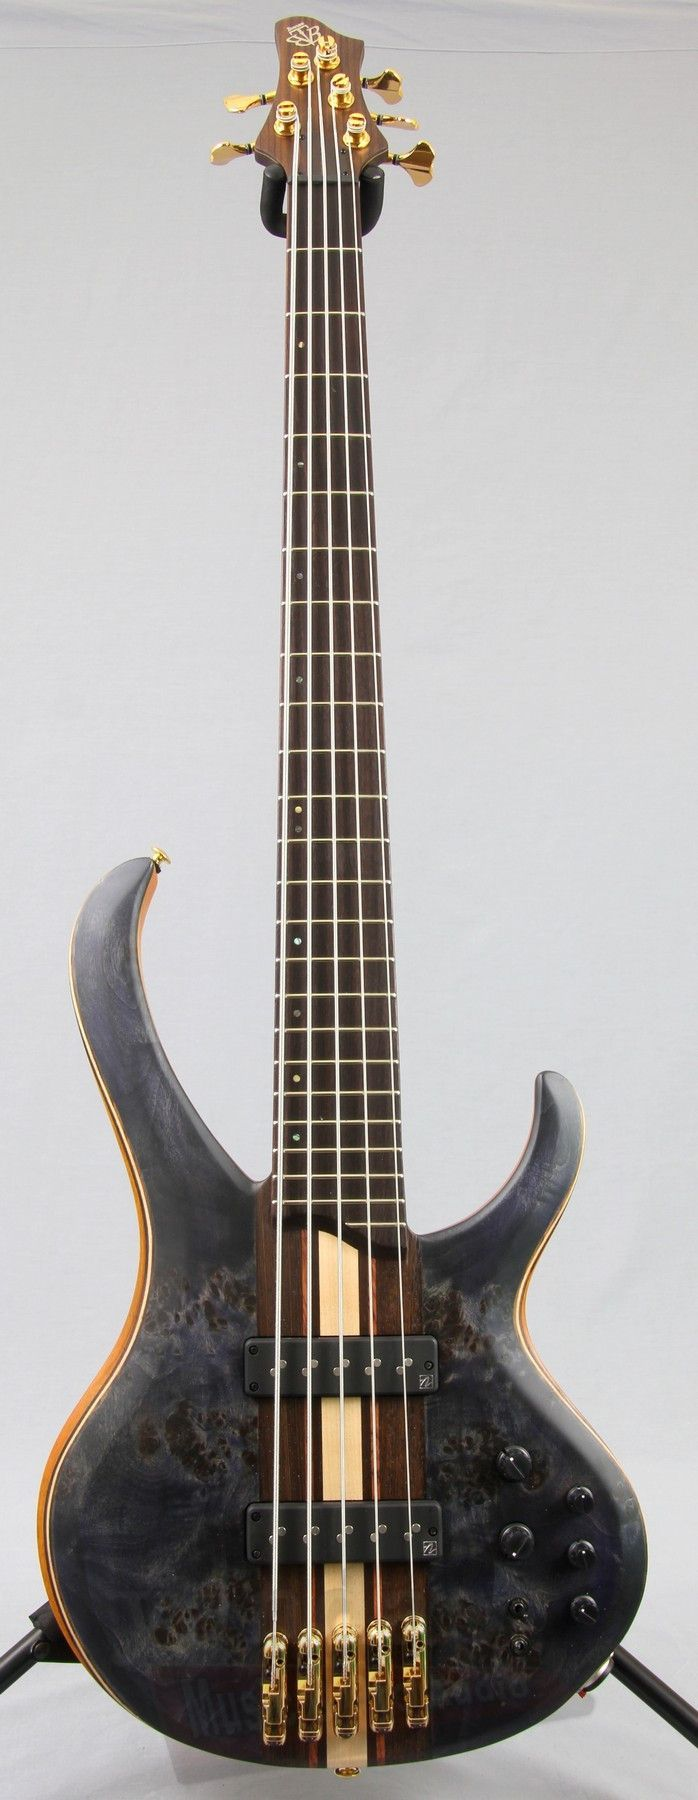 store demo ibanez btb1605 premium 5 string bass guitar the words words and boutiques. Black Bedroom Furniture Sets. Home Design Ideas